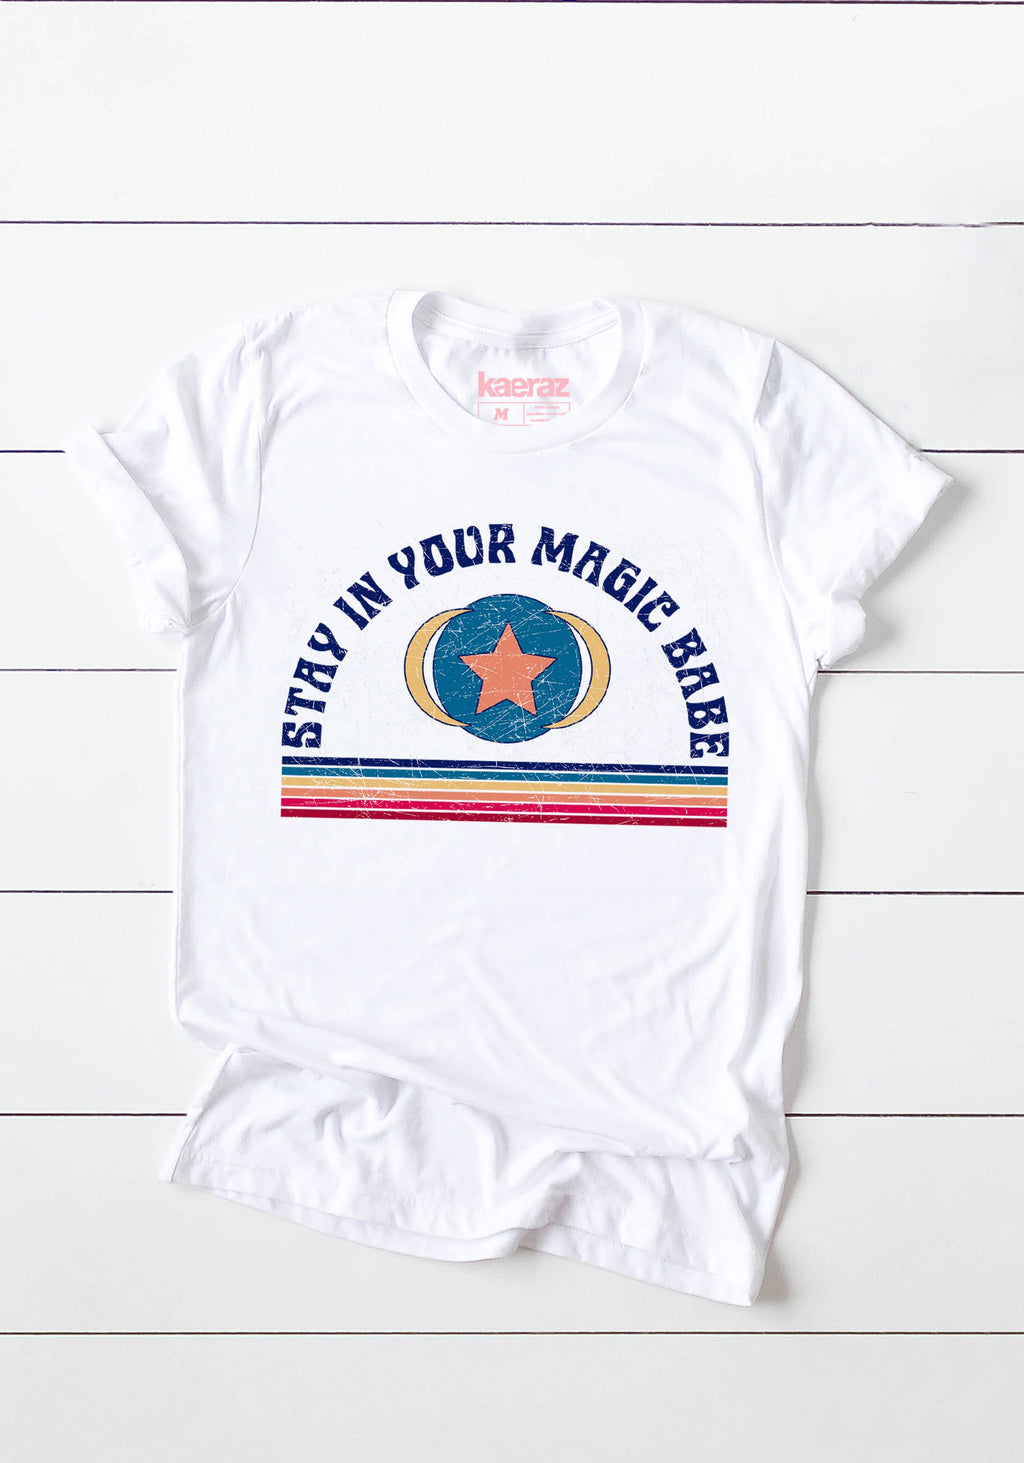 Stay In Your Magic Tee / womens graphic tees / 60s 70s retro t shirt women / babe rainbow festival tshirt / stars vintage style t shirt